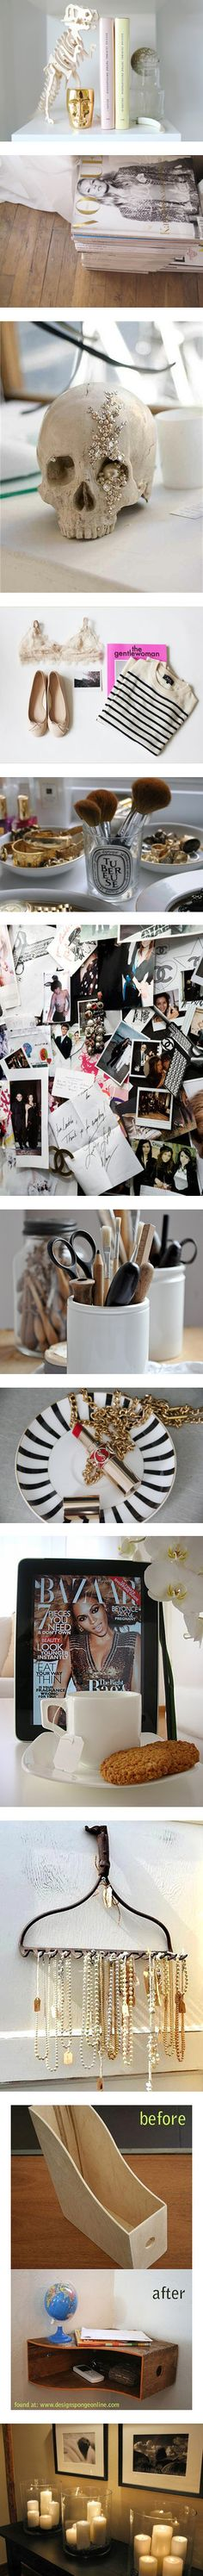 """""""bedroom room ideas tips DIY"""" by agathea ❤ liked on Polyvore"""